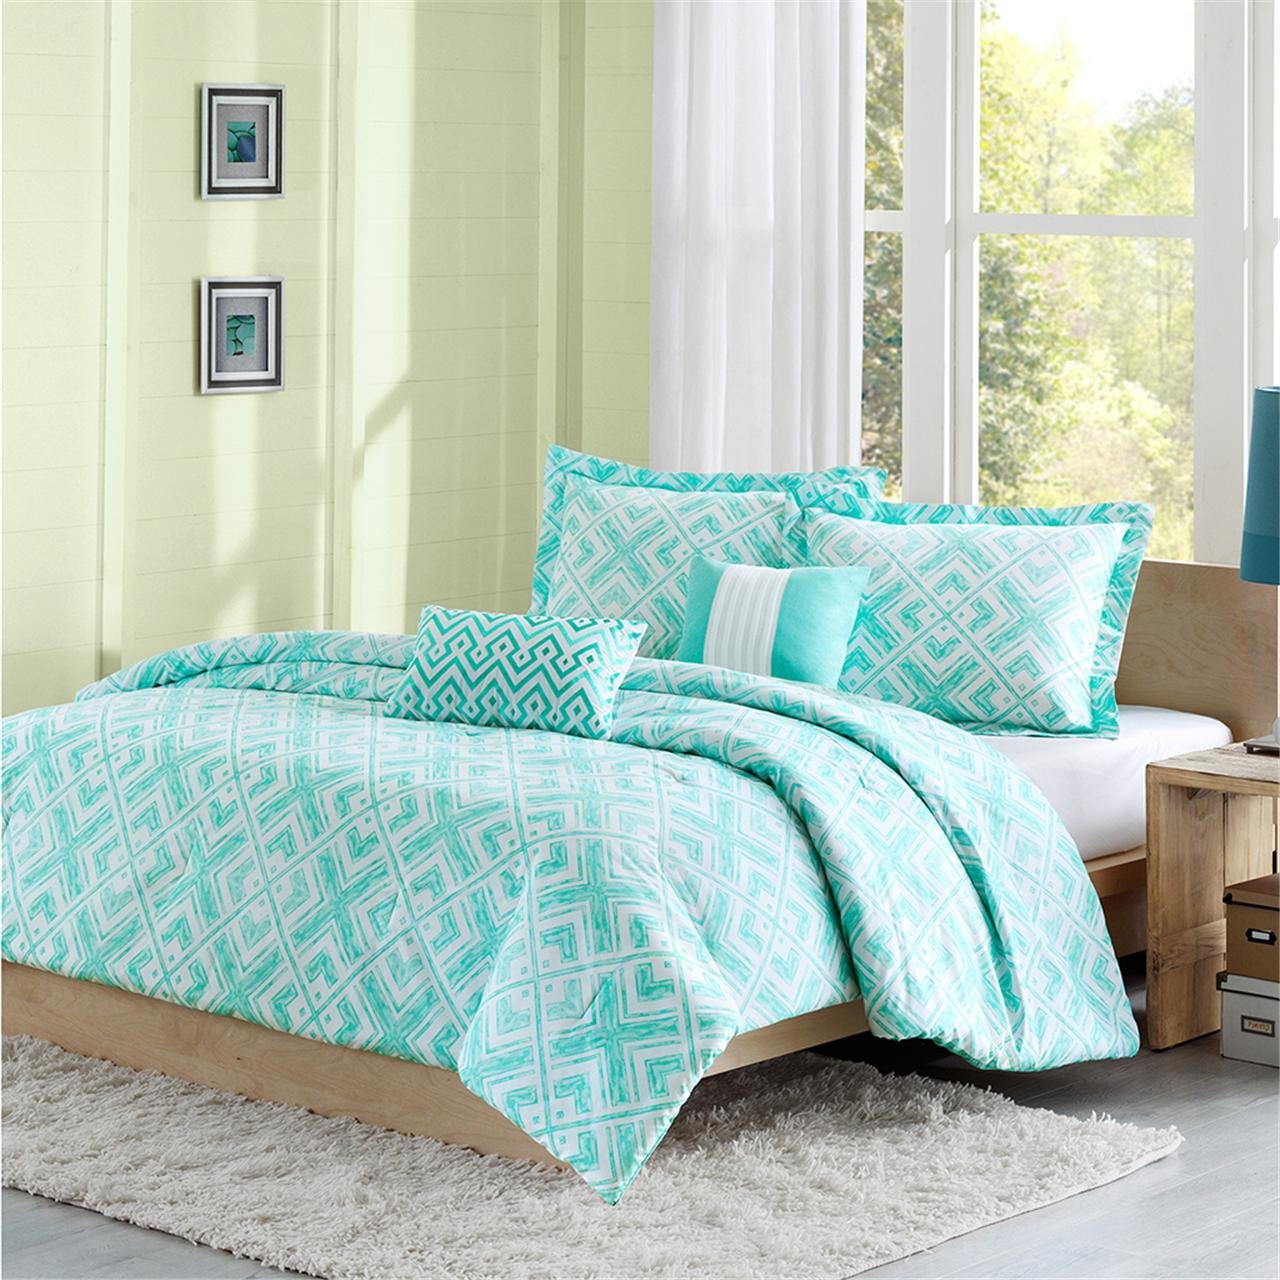 set cotton bed teal bedding cal piece chateau pin king comforter